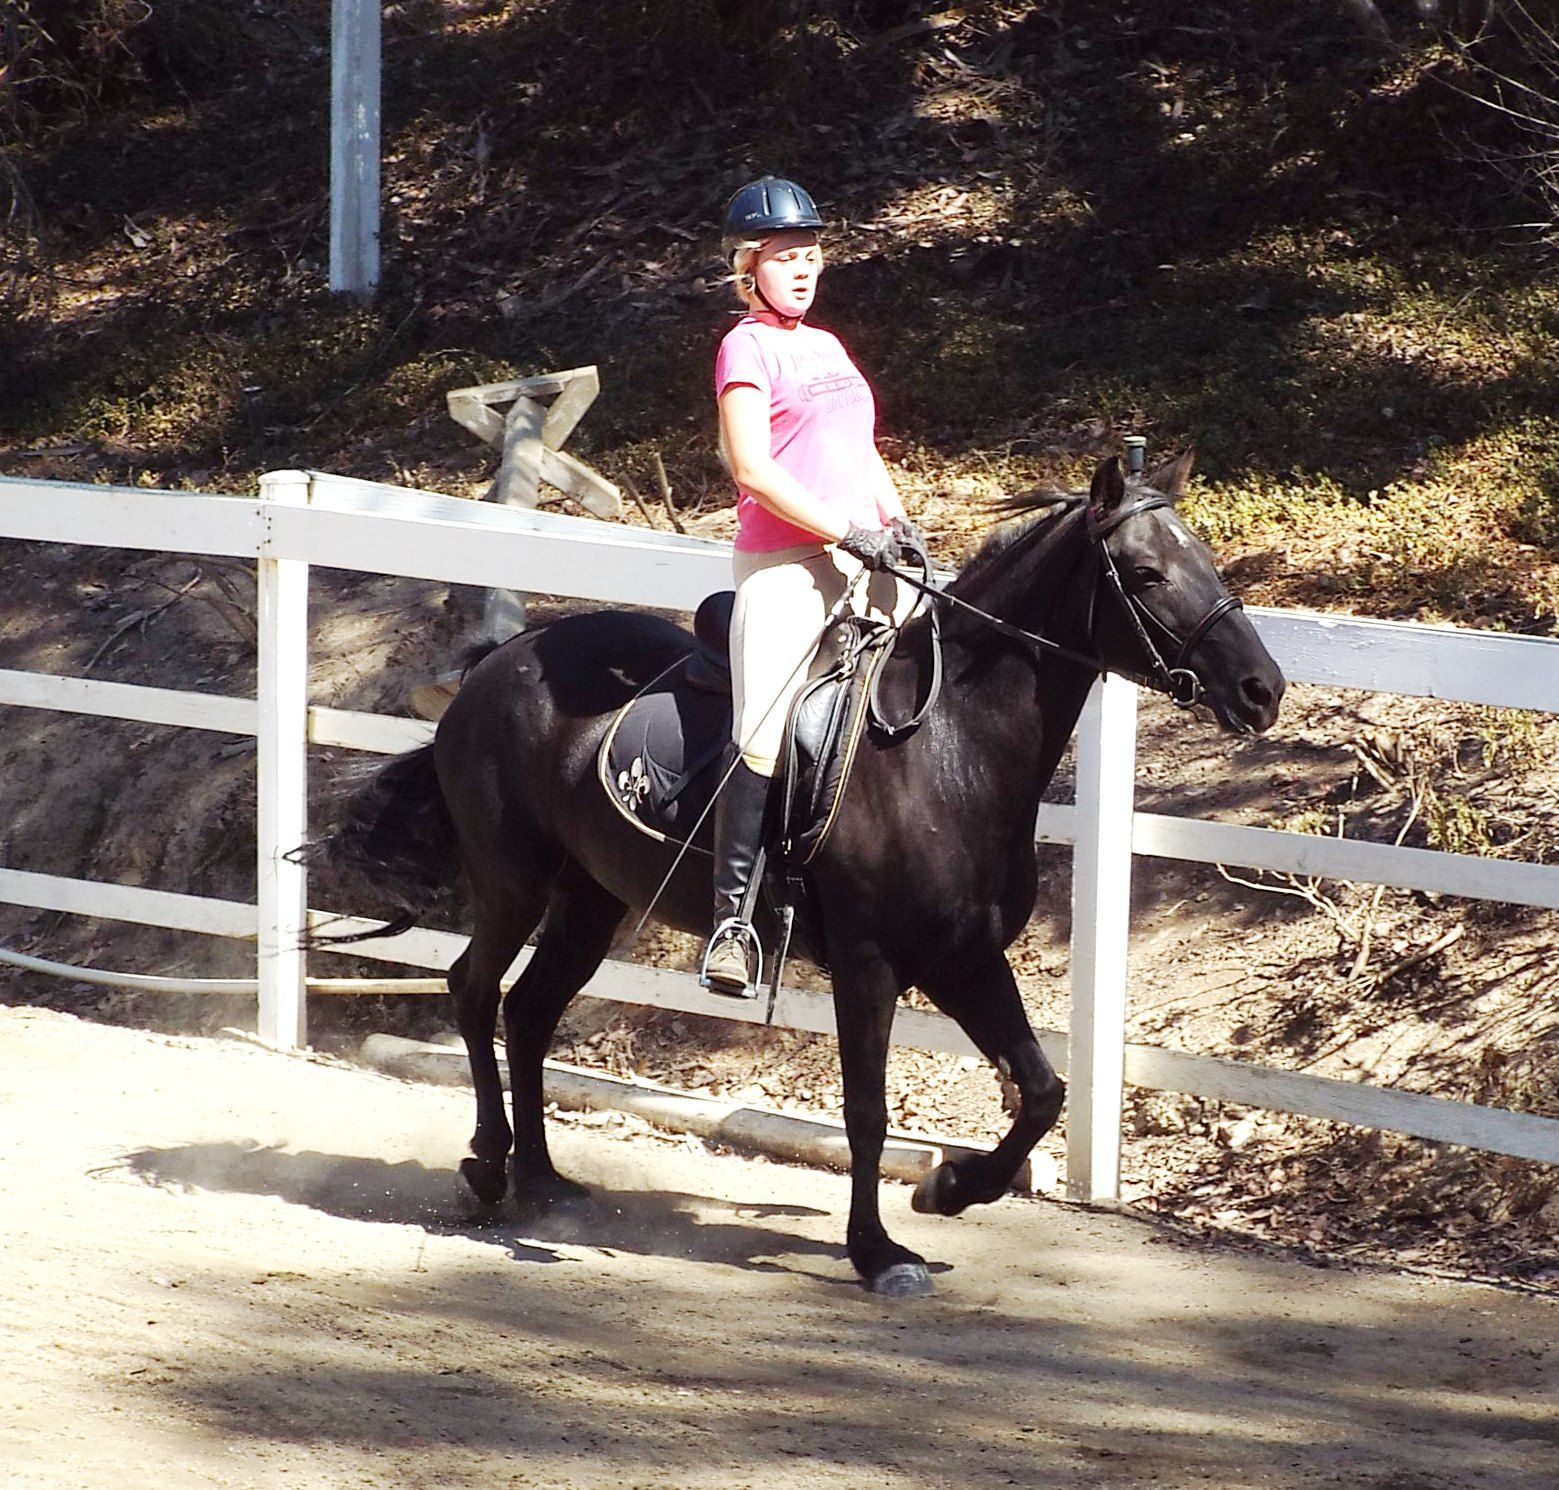 5 essay writers win free horse-riding lessons from Apache Junction Mounted Rangers